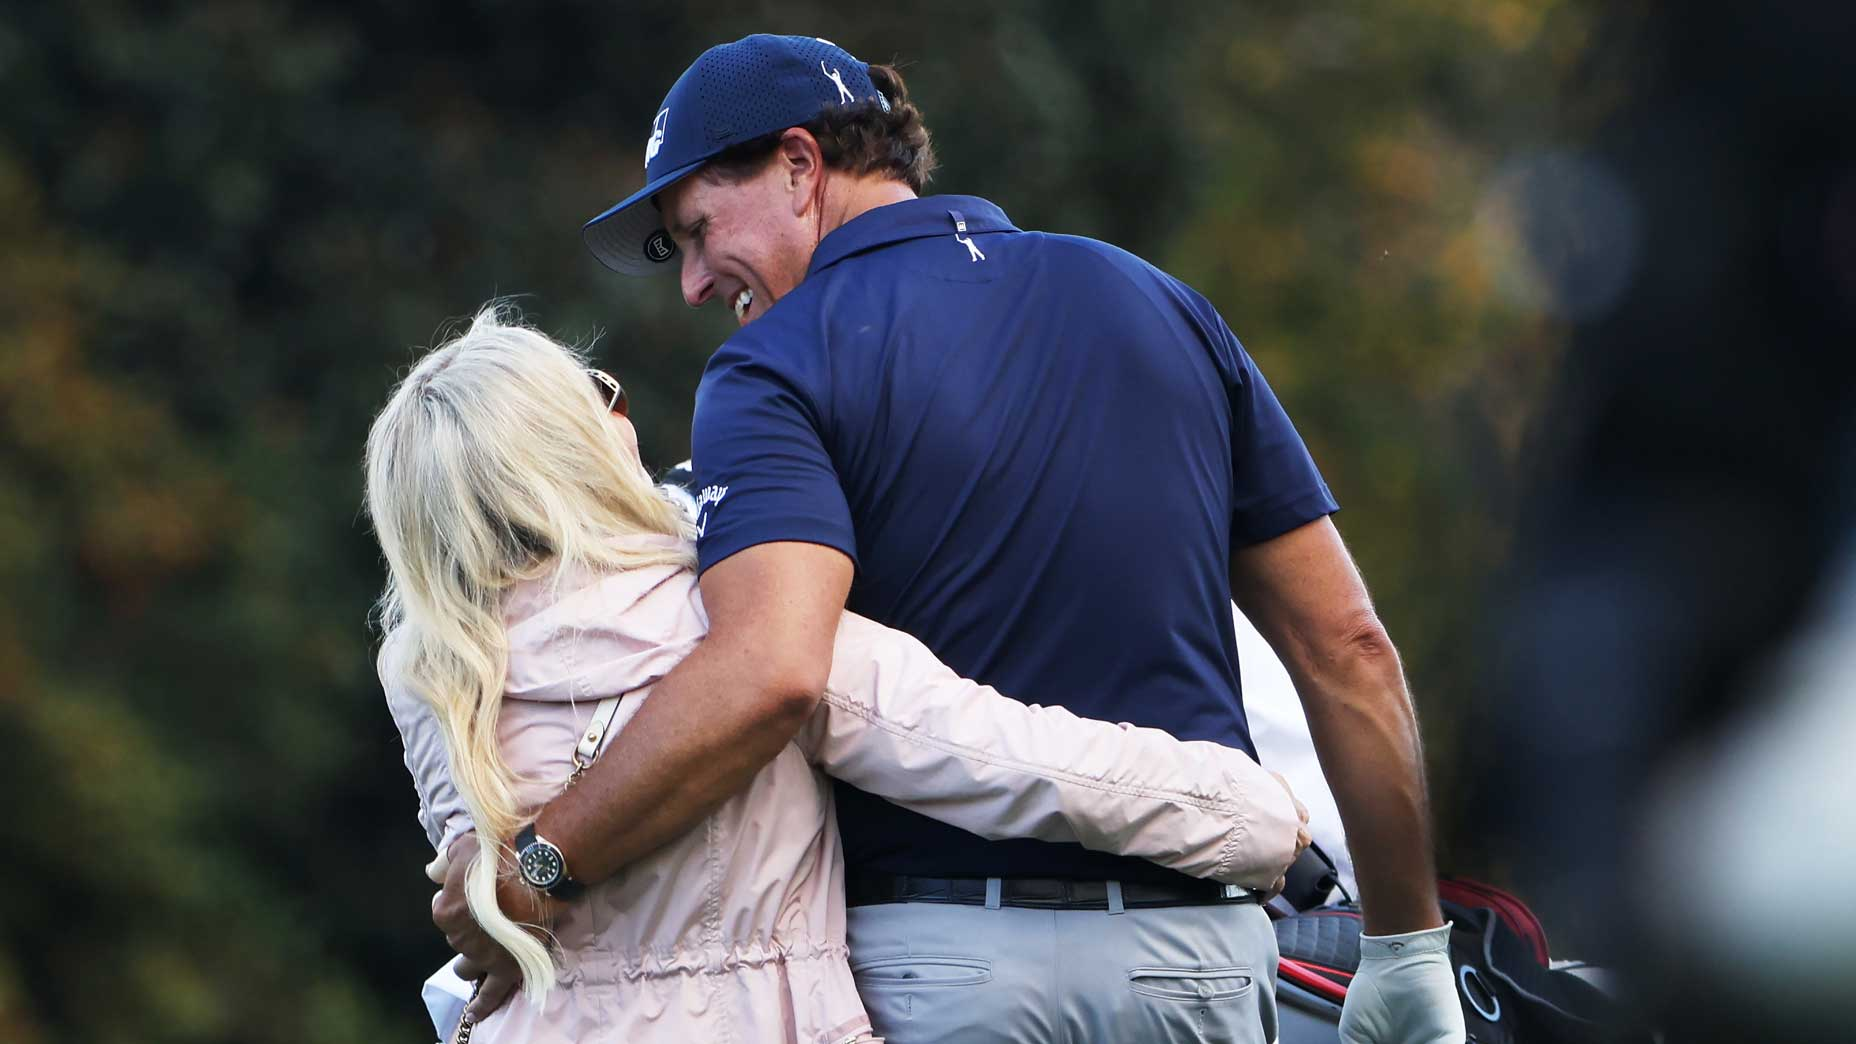 Amy and Phil Mickelson at the 2020 Masters.